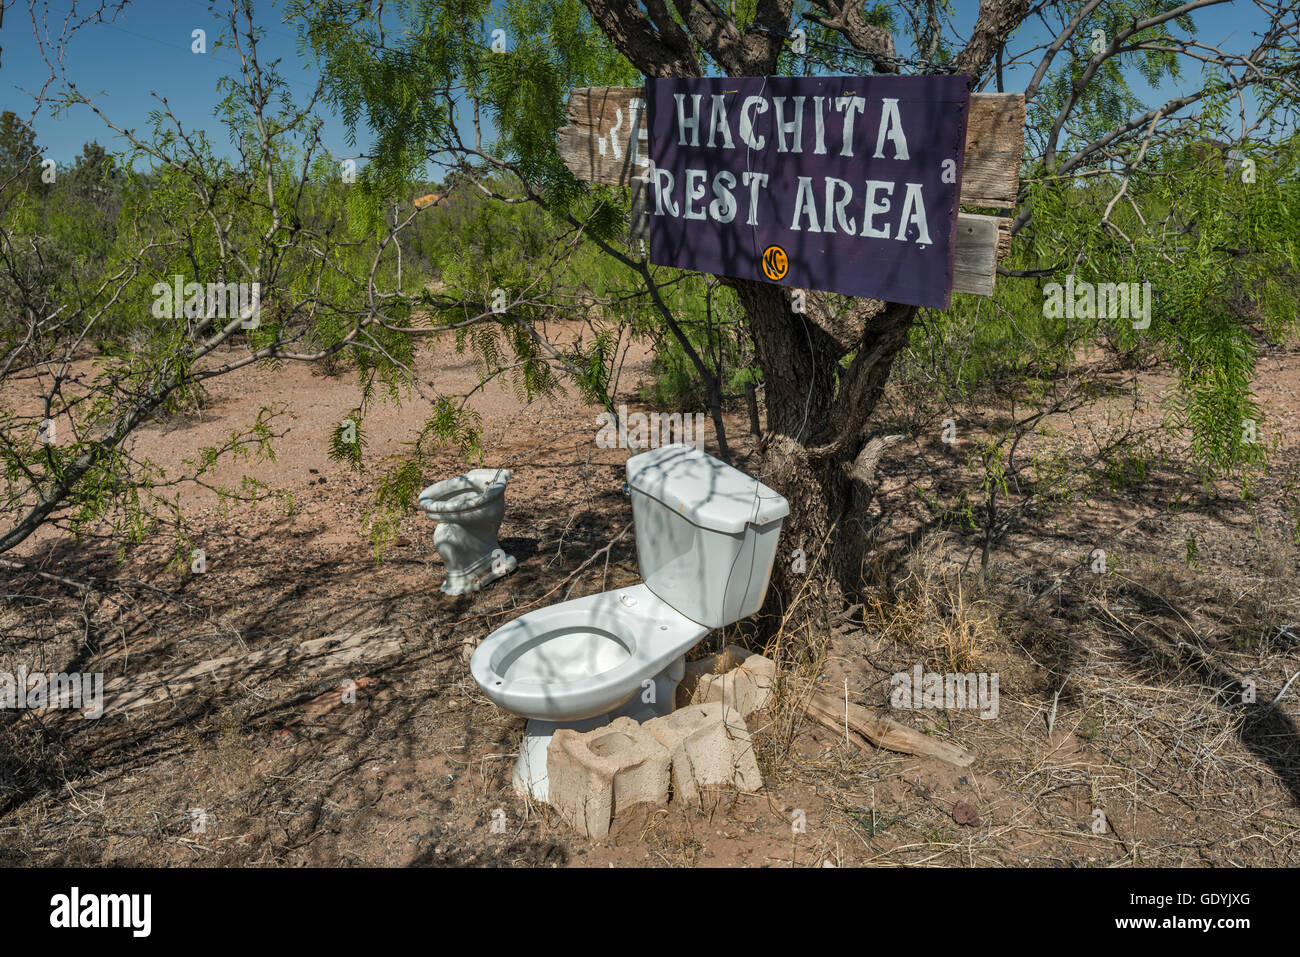 Flush toilet outside in ghost town of Hachita at Yucca Plains, Chihuahuan Desert, New Mexico, USA - Stock Image